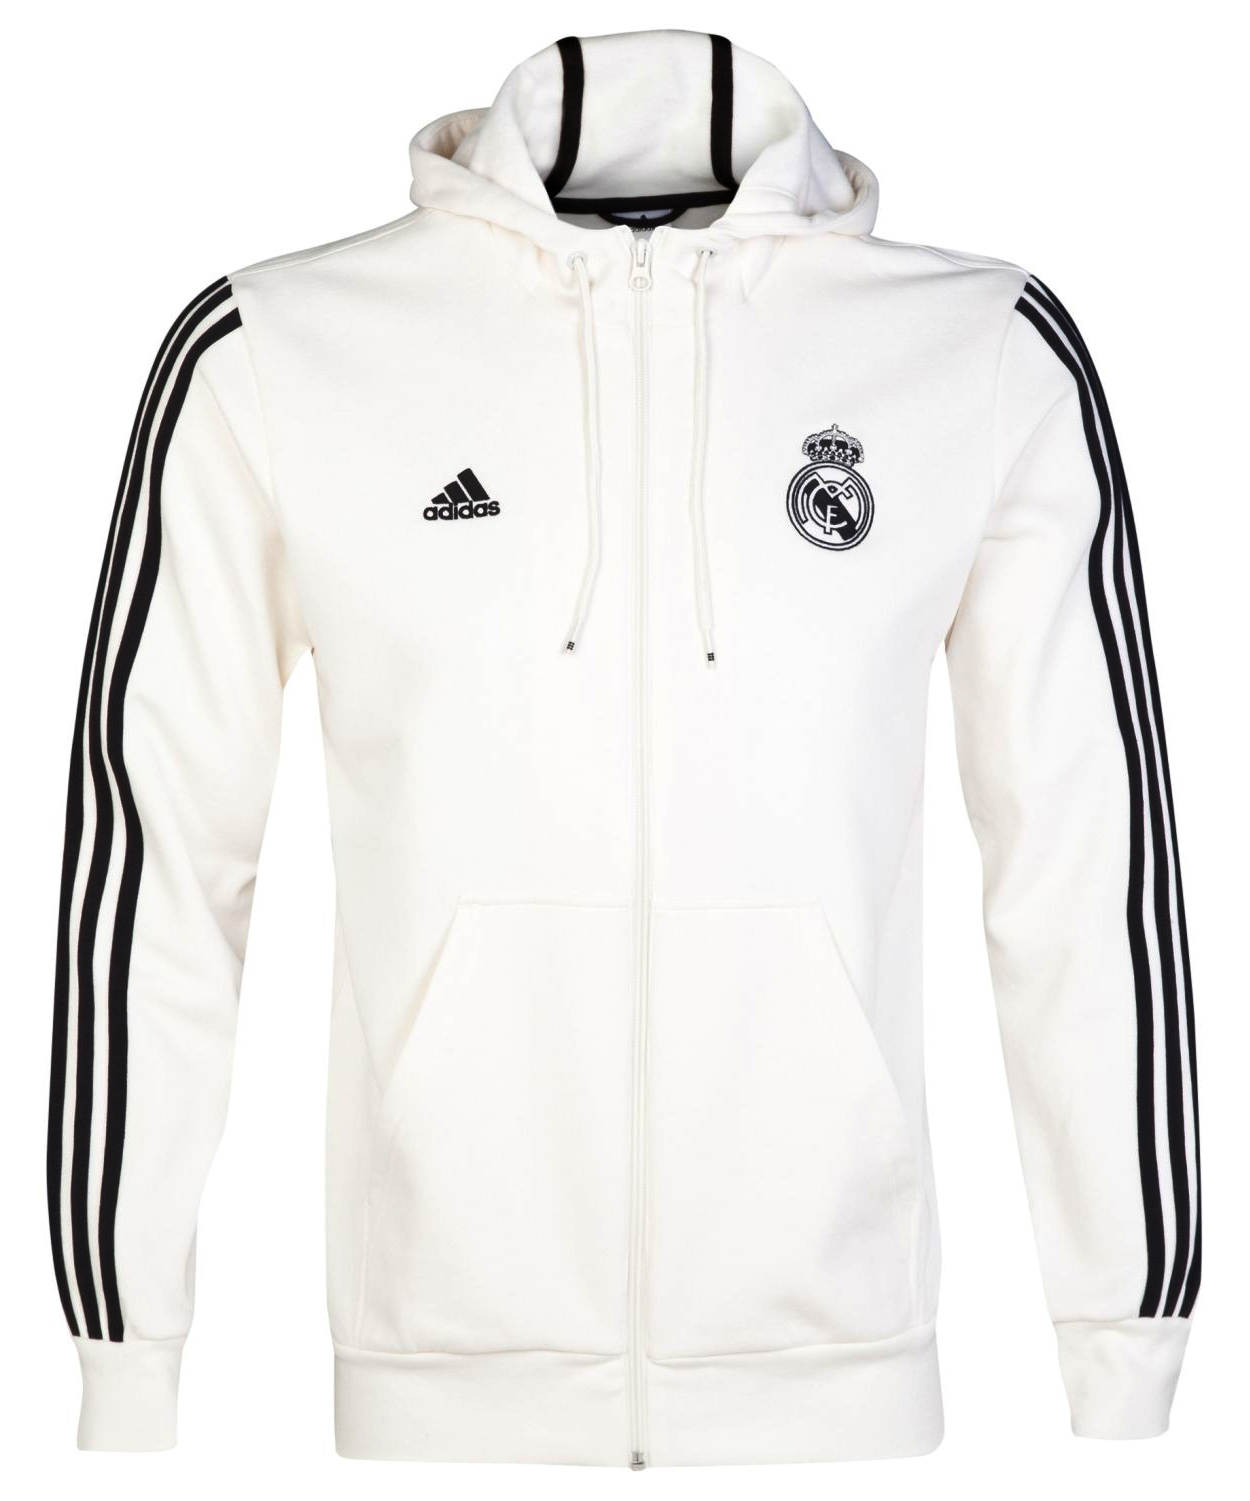 real madrid adidas jacke jacket hoodie 2014 15 wei sweatshirt herren ebay. Black Bedroom Furniture Sets. Home Design Ideas